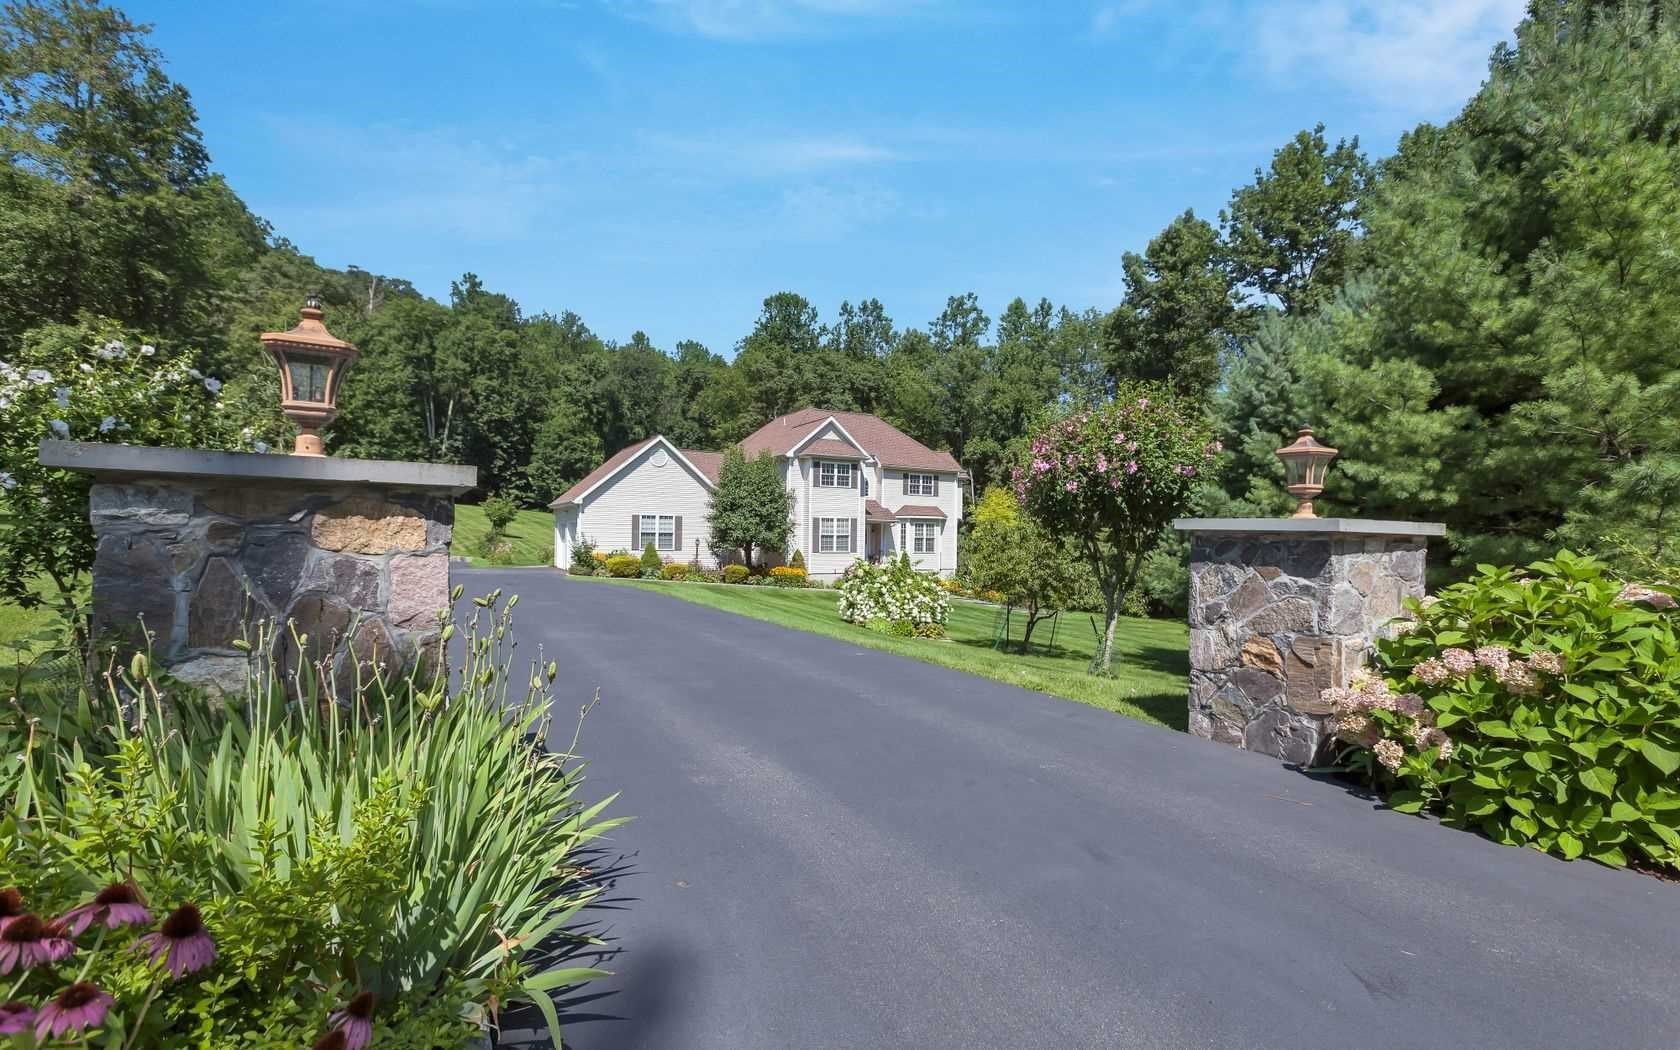 Single Family Home for Sale at 80 PENNEBROOKE LANE 80 PENNEBROOKE LANE Carmel, New York 10541 United States